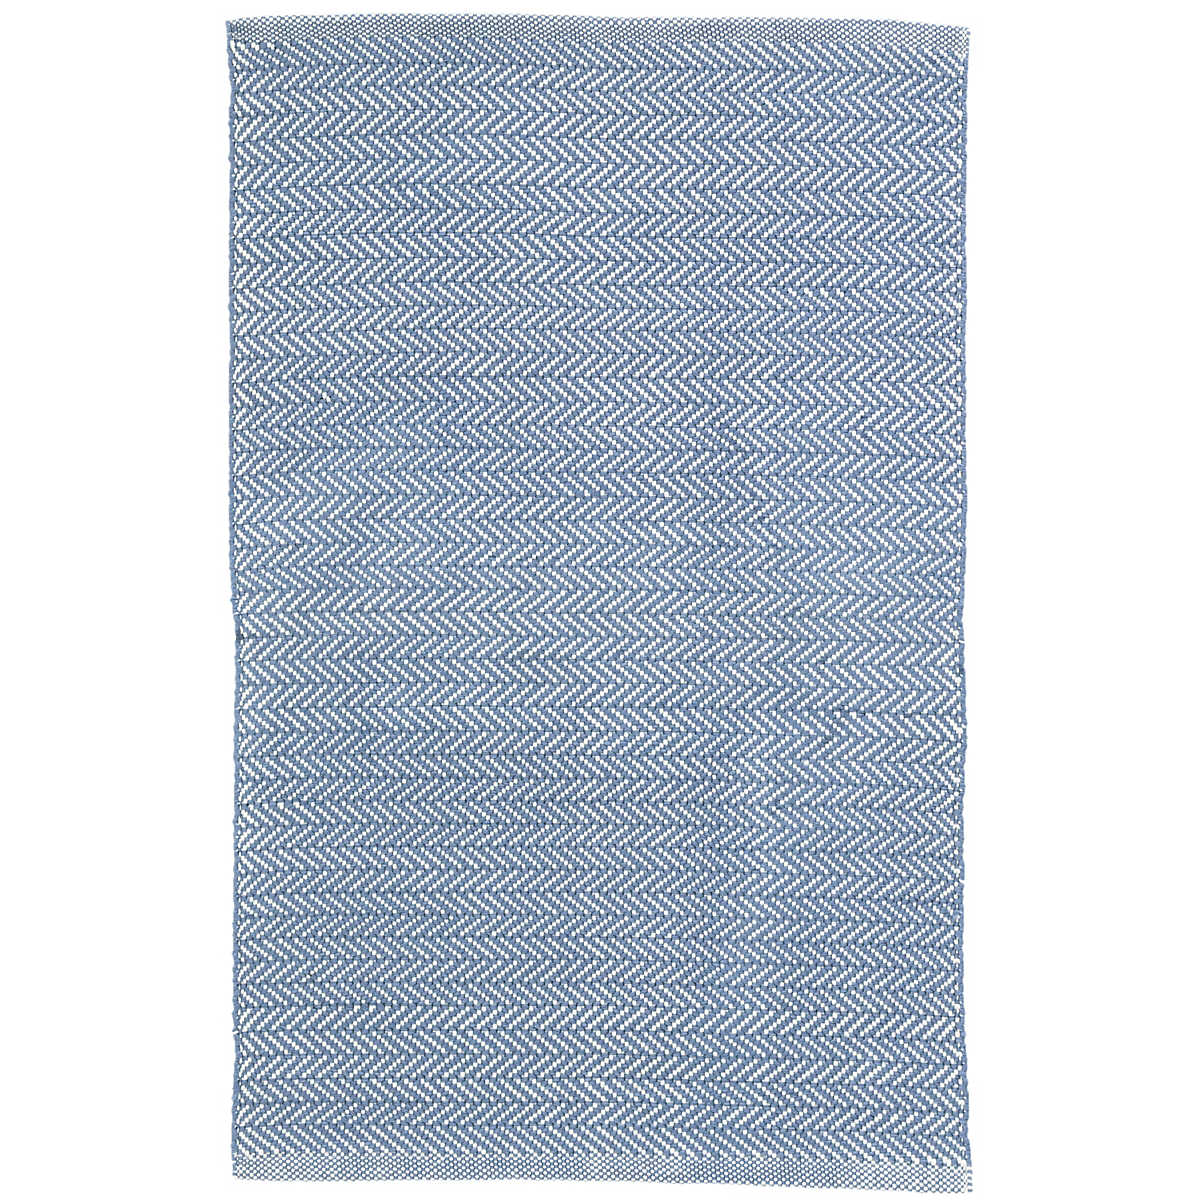 Herringbone Denim/Ivory Indoor/Outdoor Rug | Dash & Albert